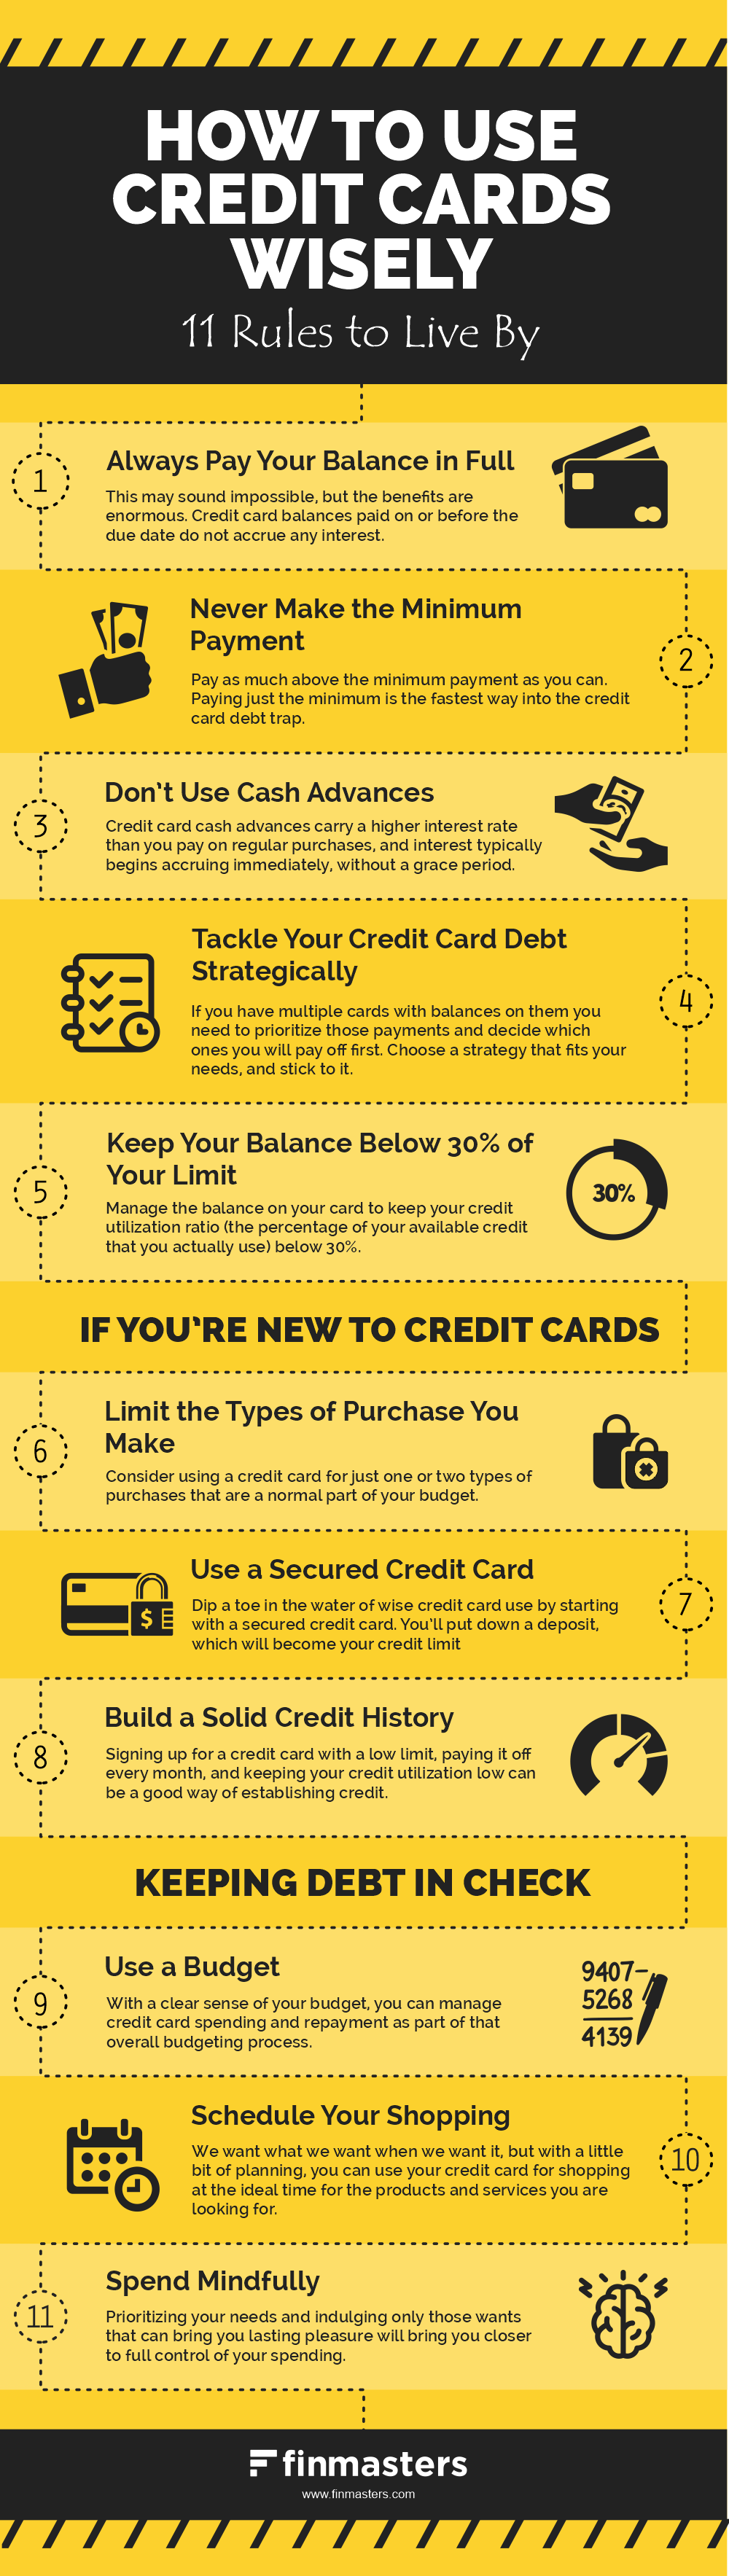 How to use credit cards wisely infographic